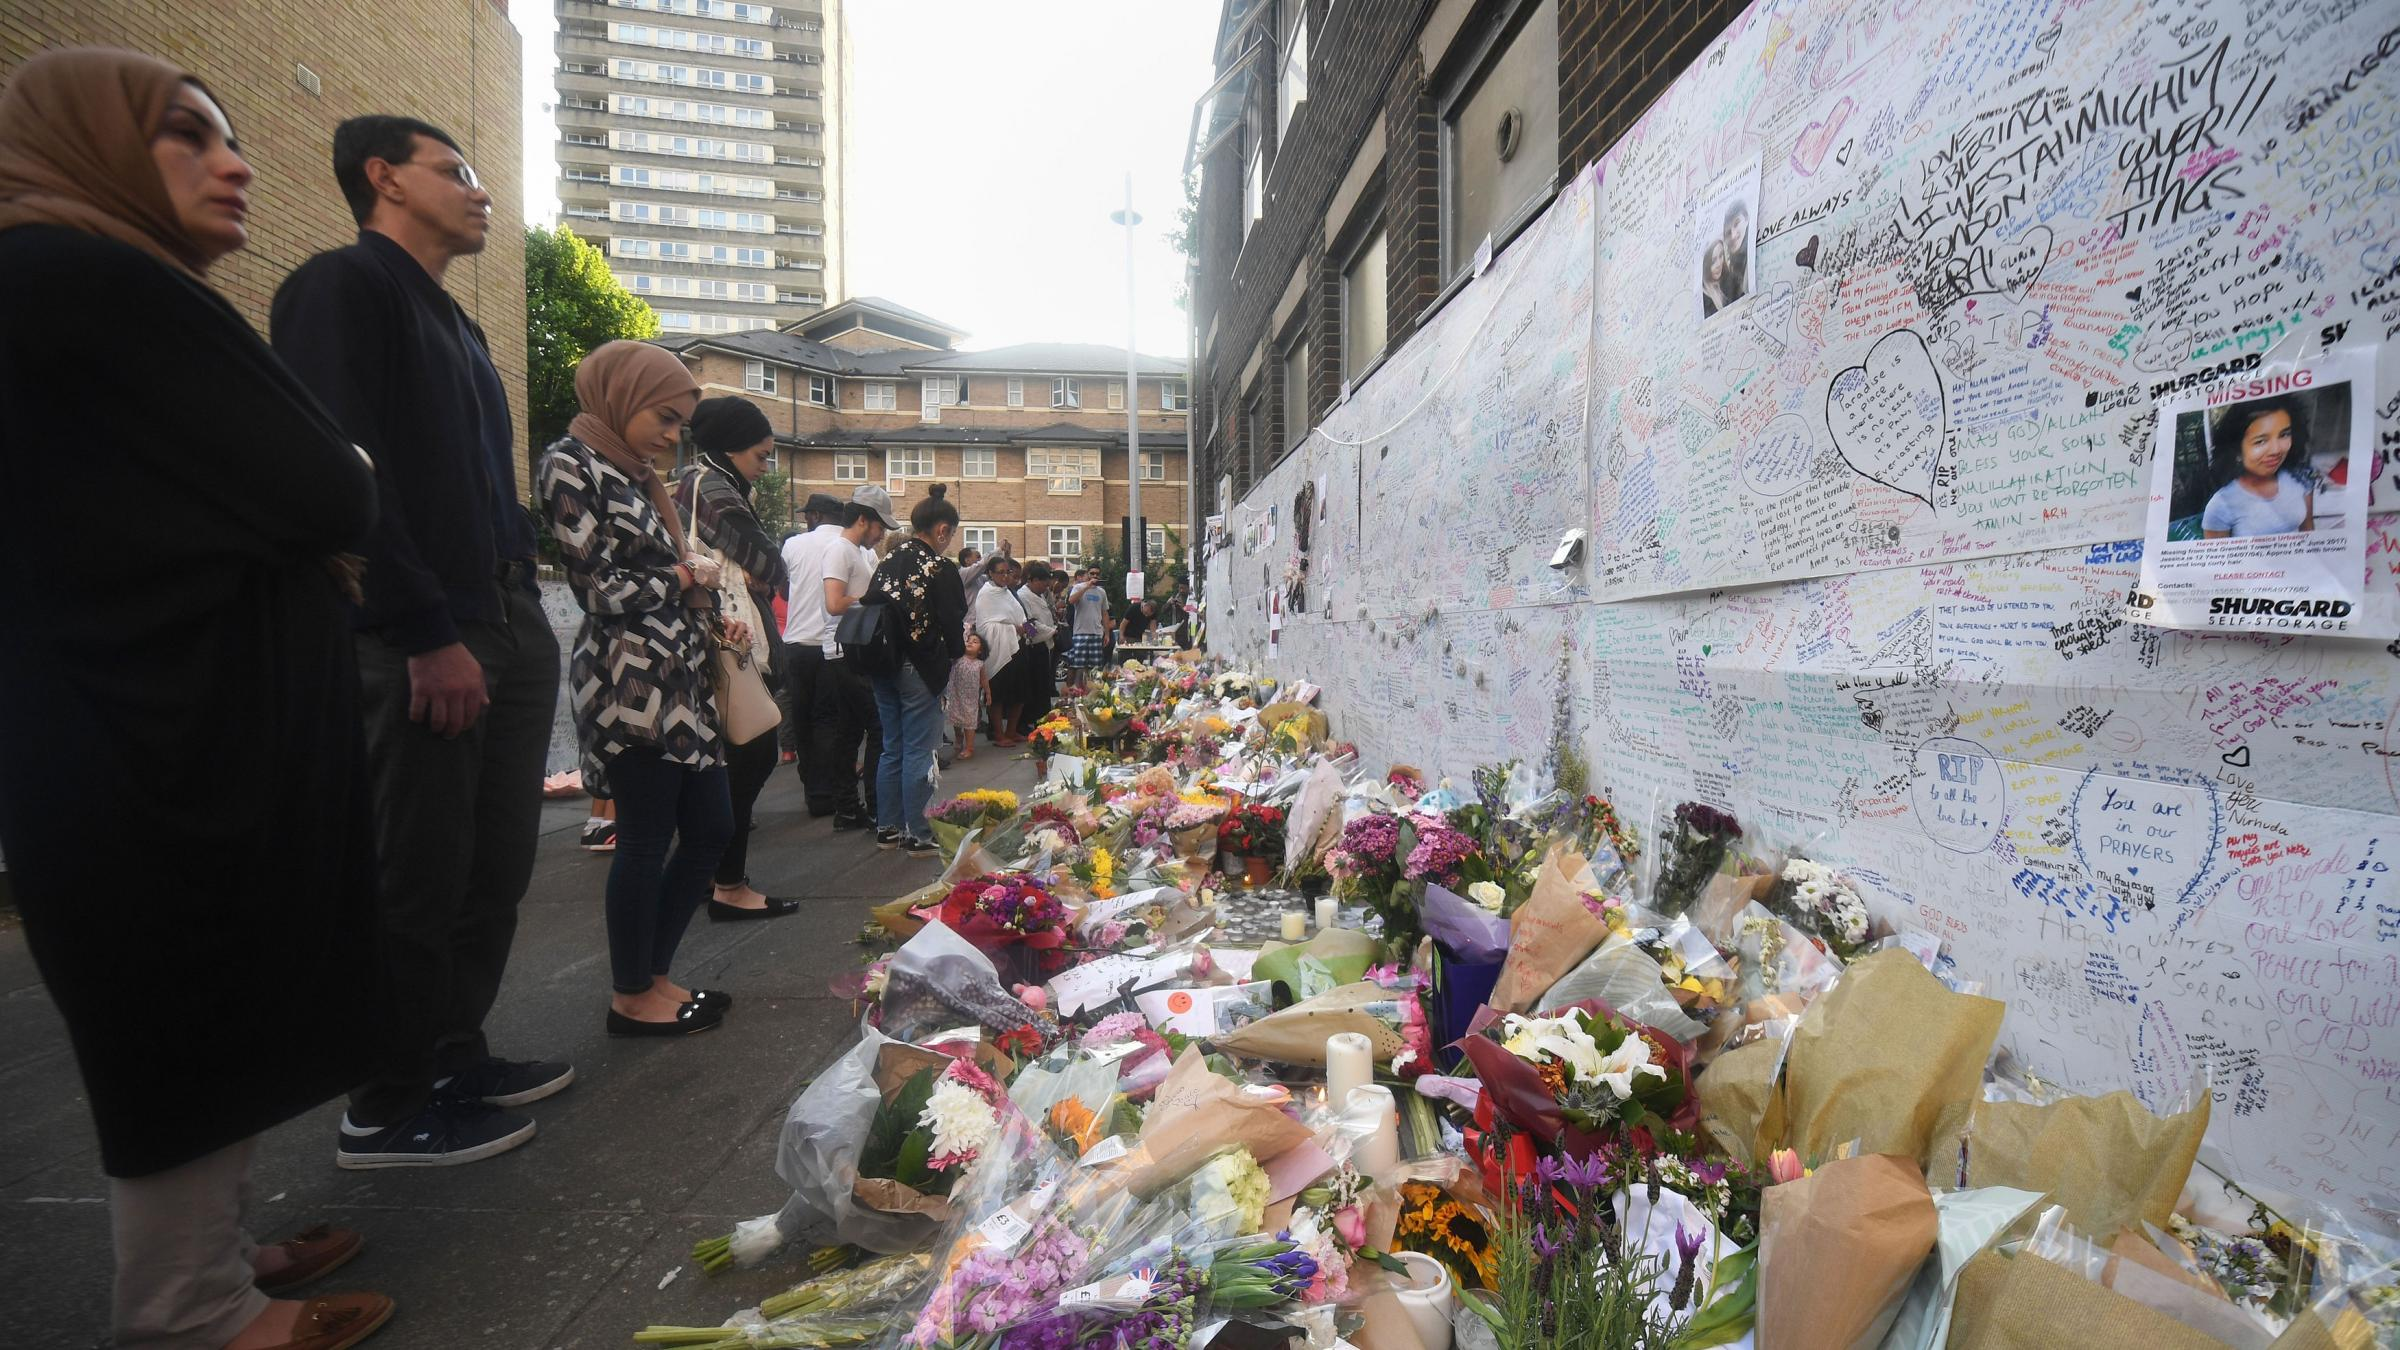 London mayor admits public anger over deadly fire